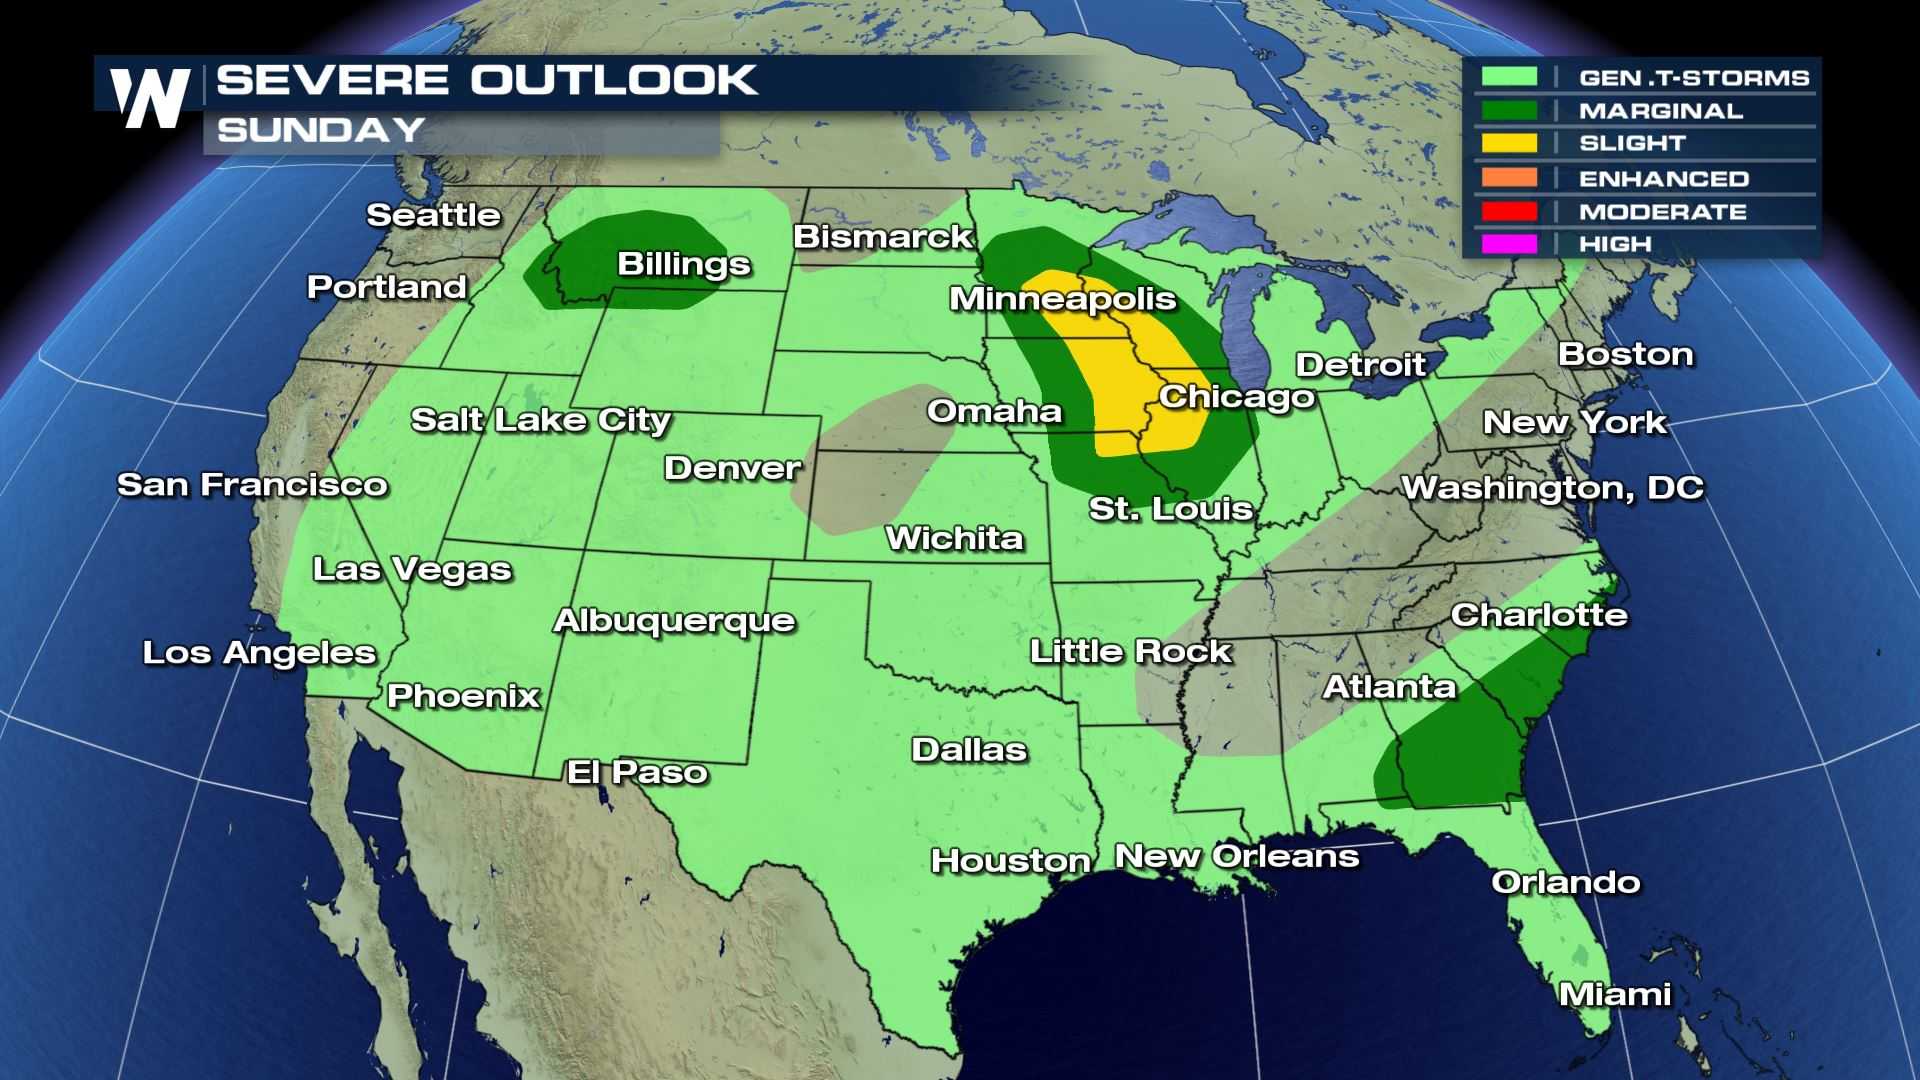 severe weather targets high plains and midwestern u s sunday weathernation